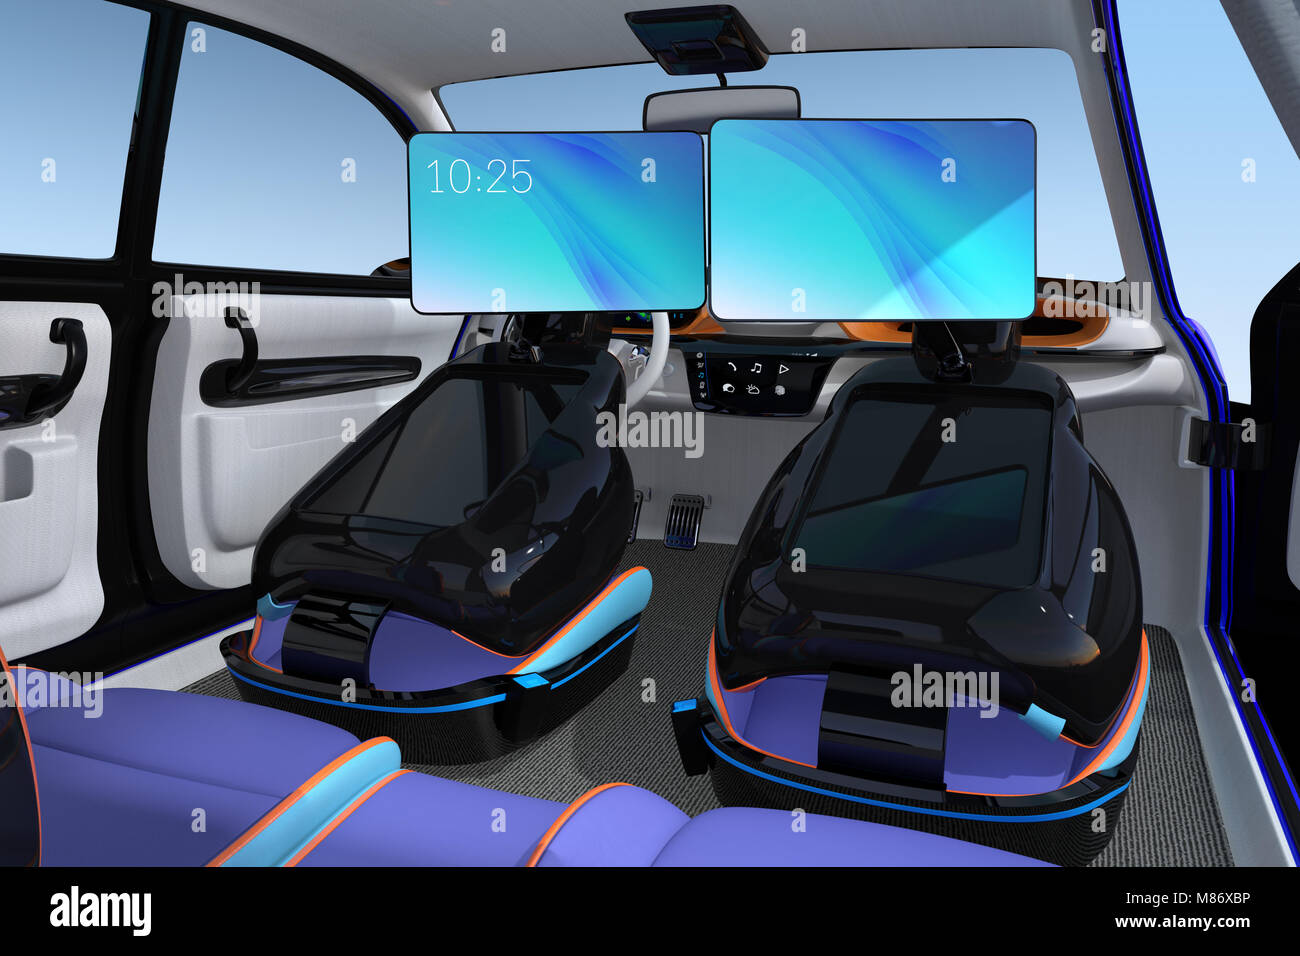 self driving car interior concept front stock photos self driving car interior concept front. Black Bedroom Furniture Sets. Home Design Ideas